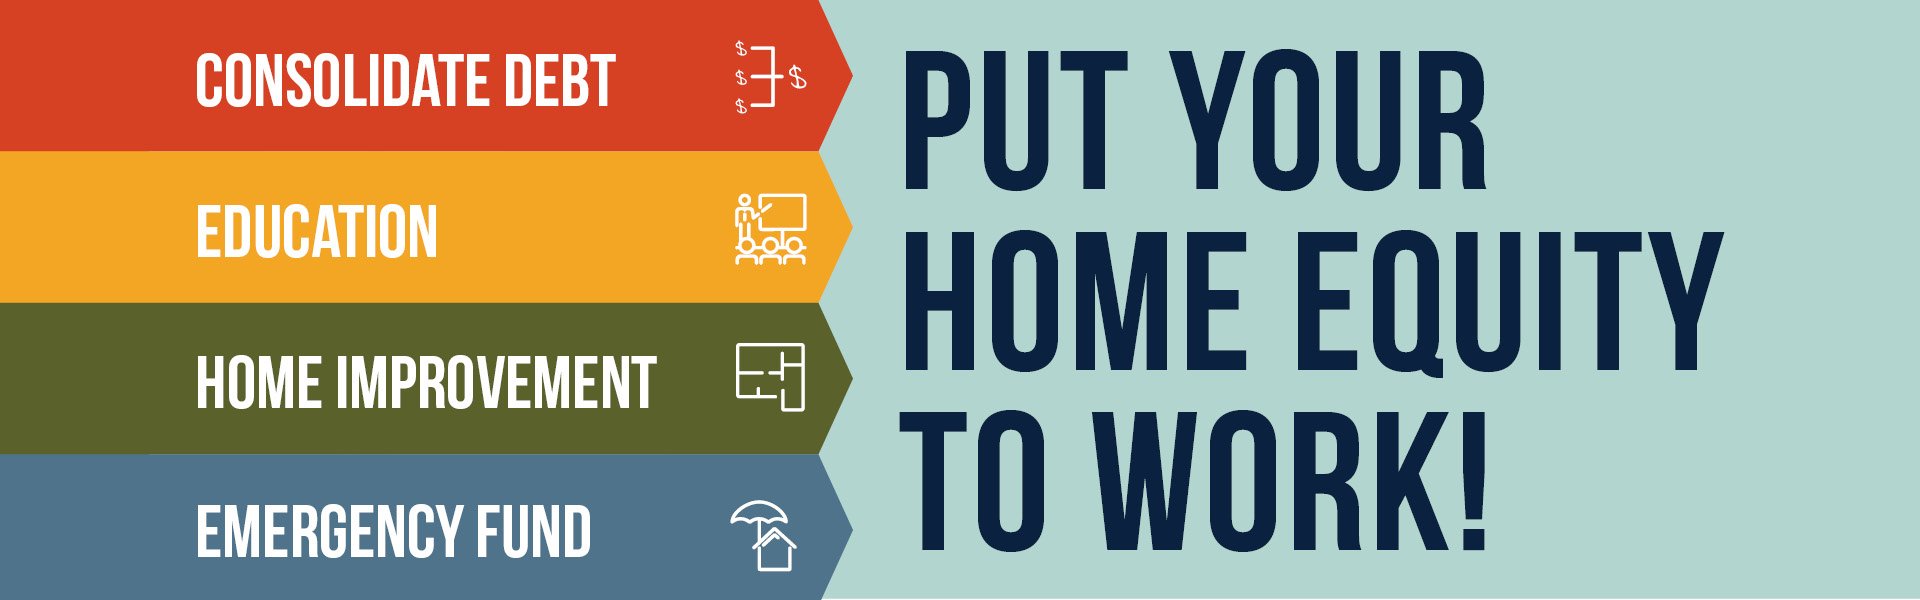 Consolidate Debt. Education. Home Improvement. Emergency Fund. Put your Home Equity to Work!